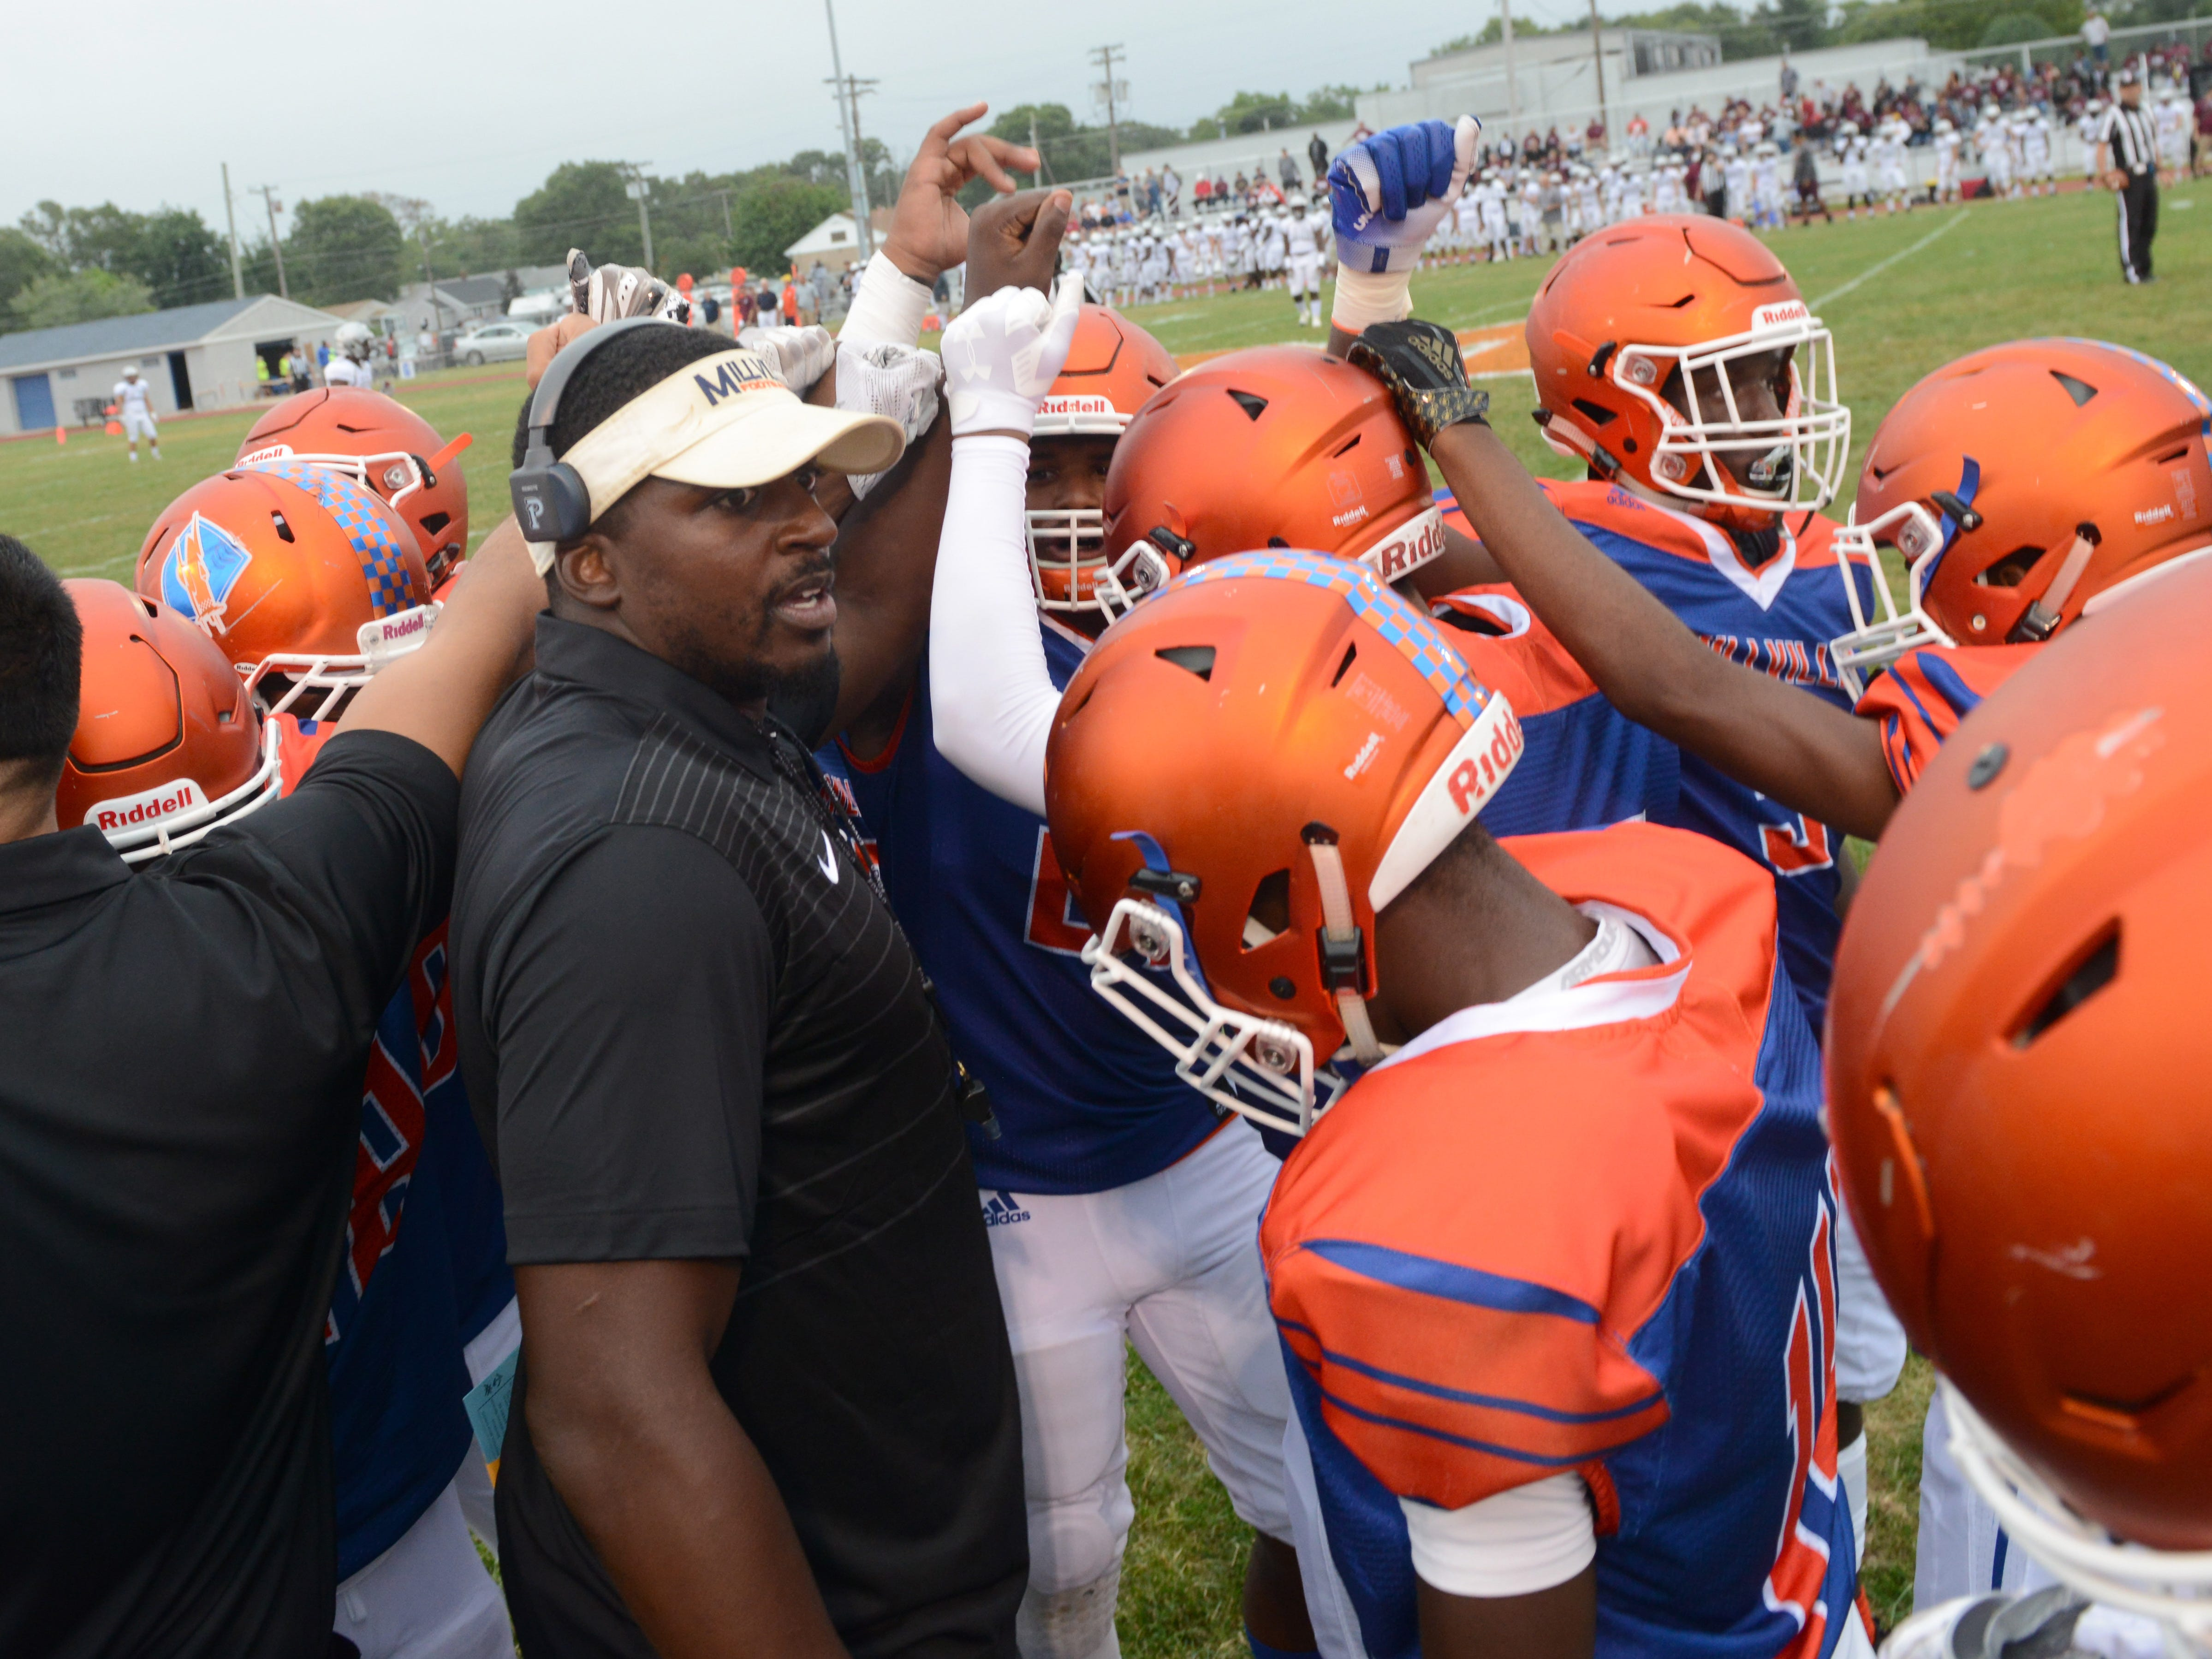 Millville head coach Dennis Thomas pumps up his team before the start of the season opening football game against St. Peter's Prep at Millville Memorial High School, Friday, Aug. 31, 2018.